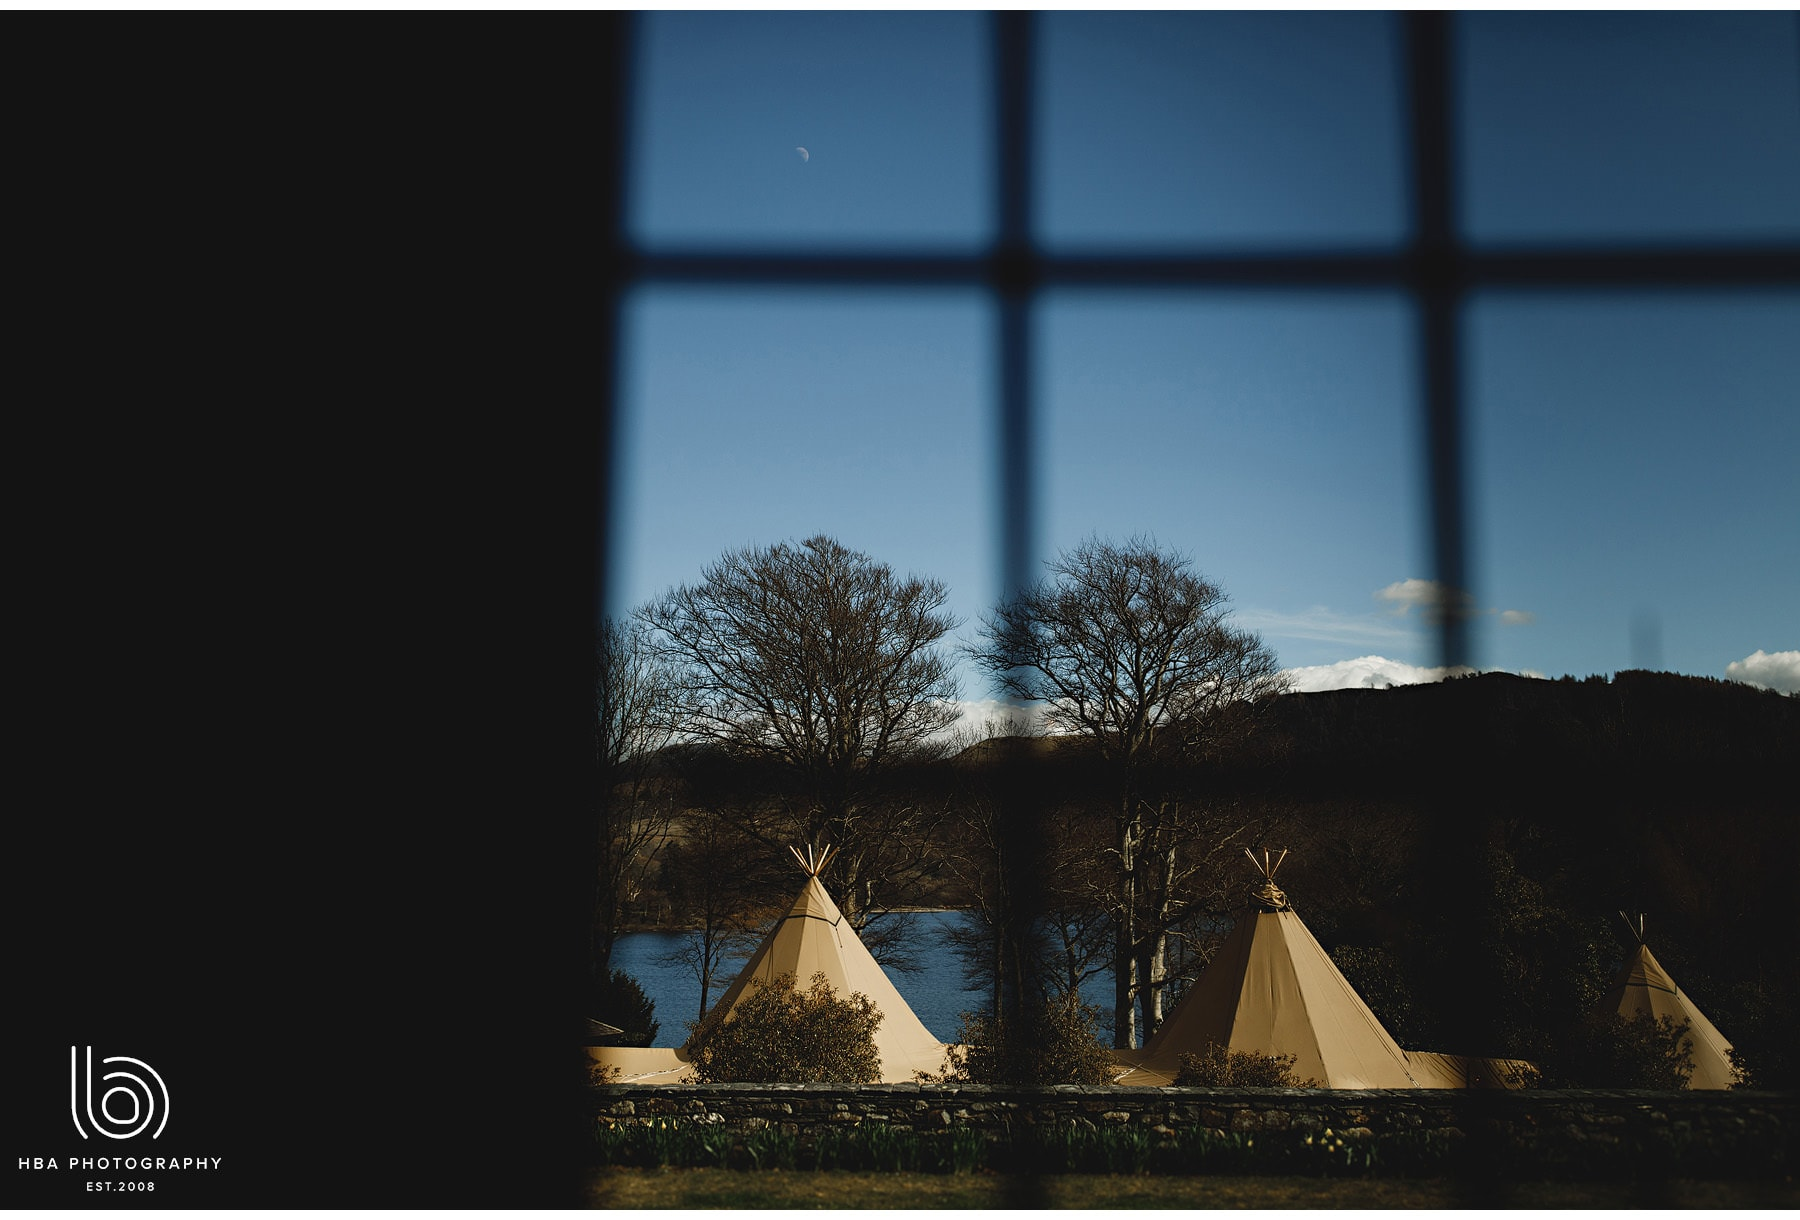 the tipi through the window